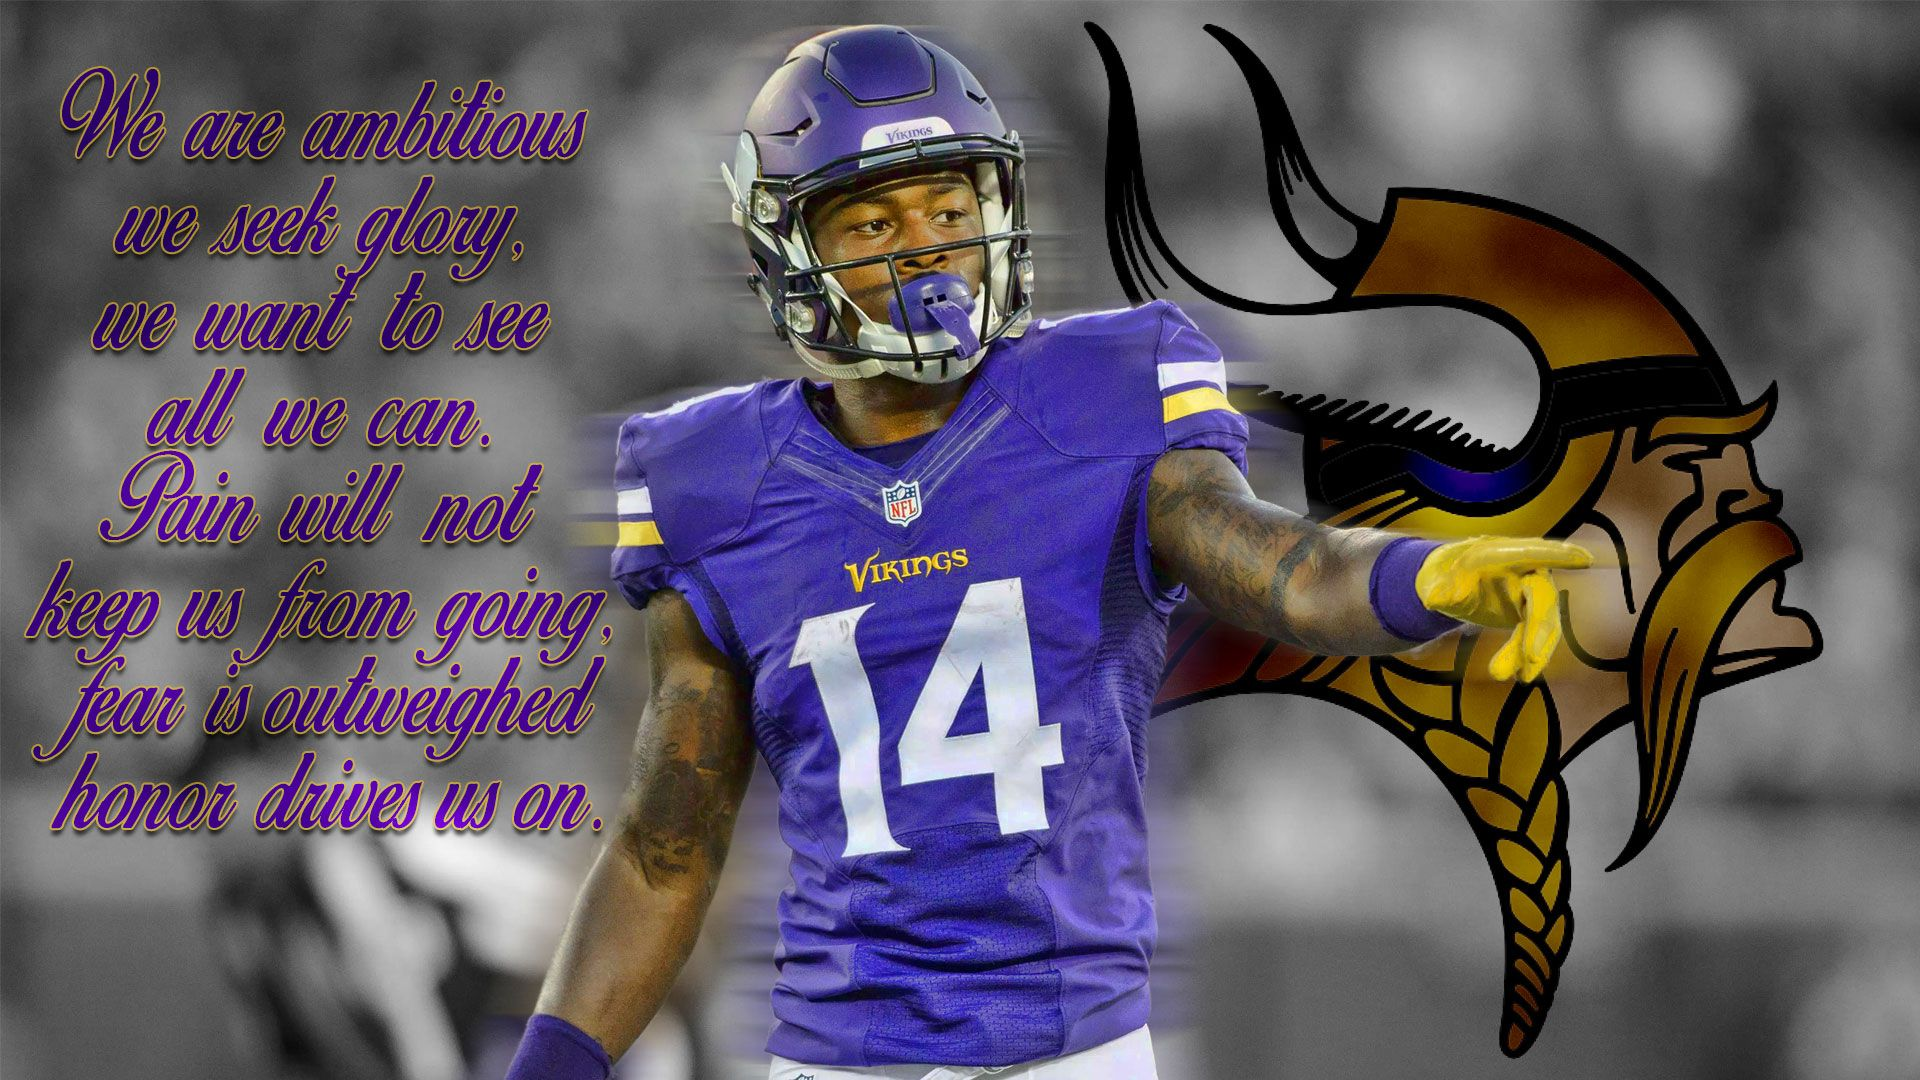 Minnesota Vikings Wallpaper - The Wallpaper